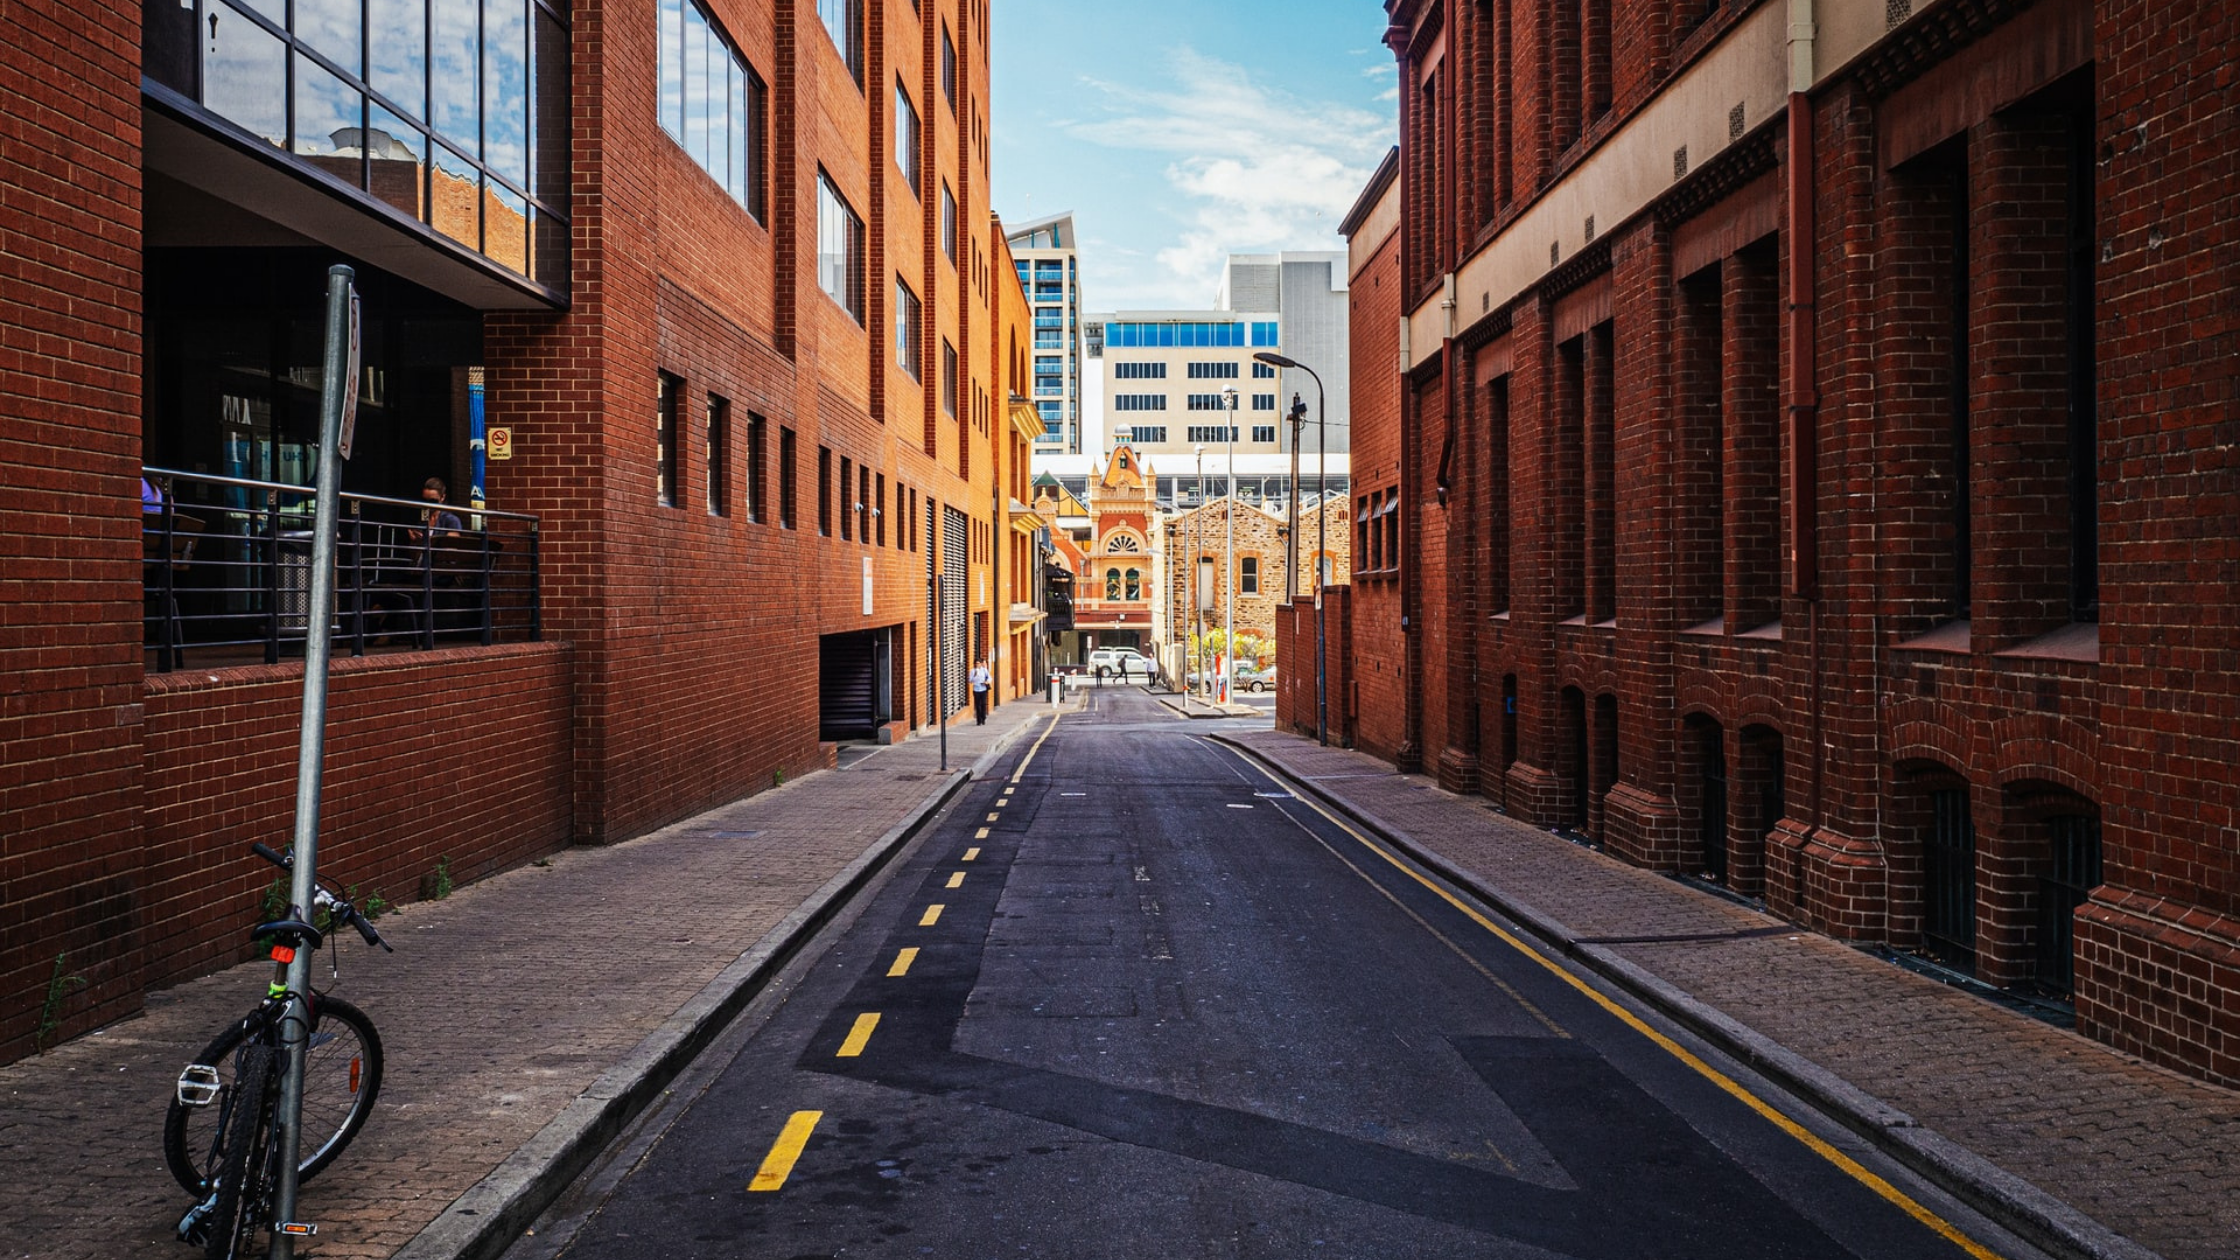 City alley between two red bricked buildings